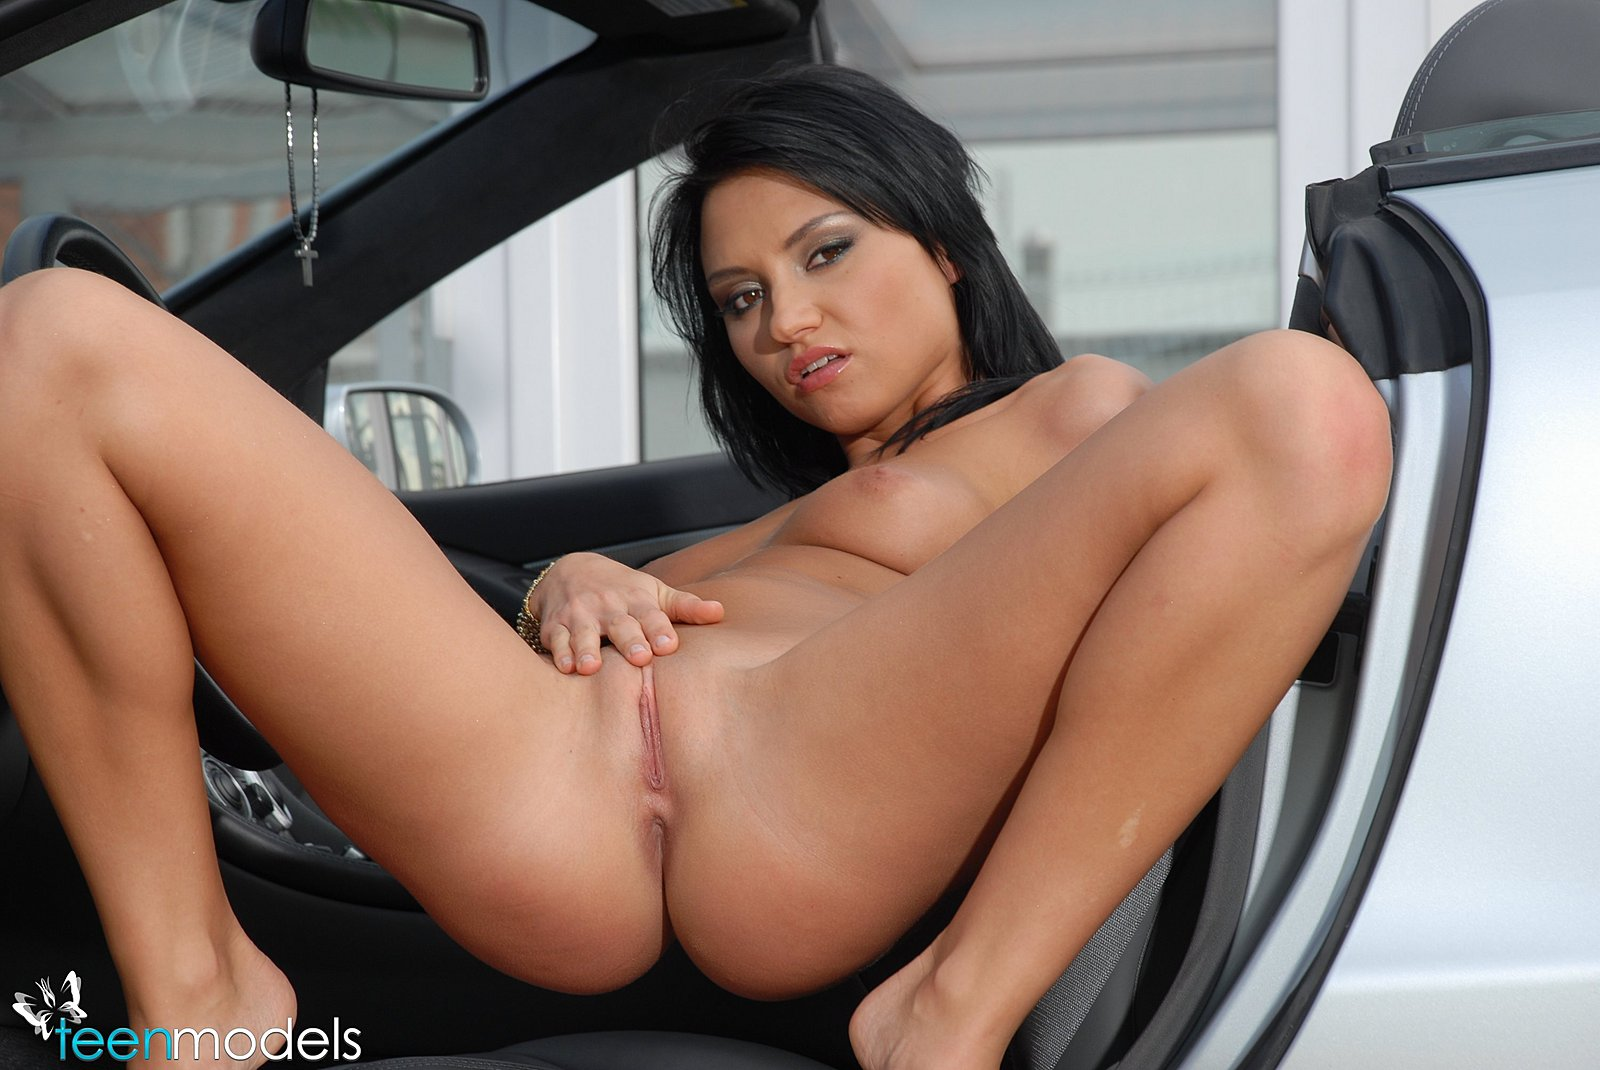 Sports Cars With Porn Girls